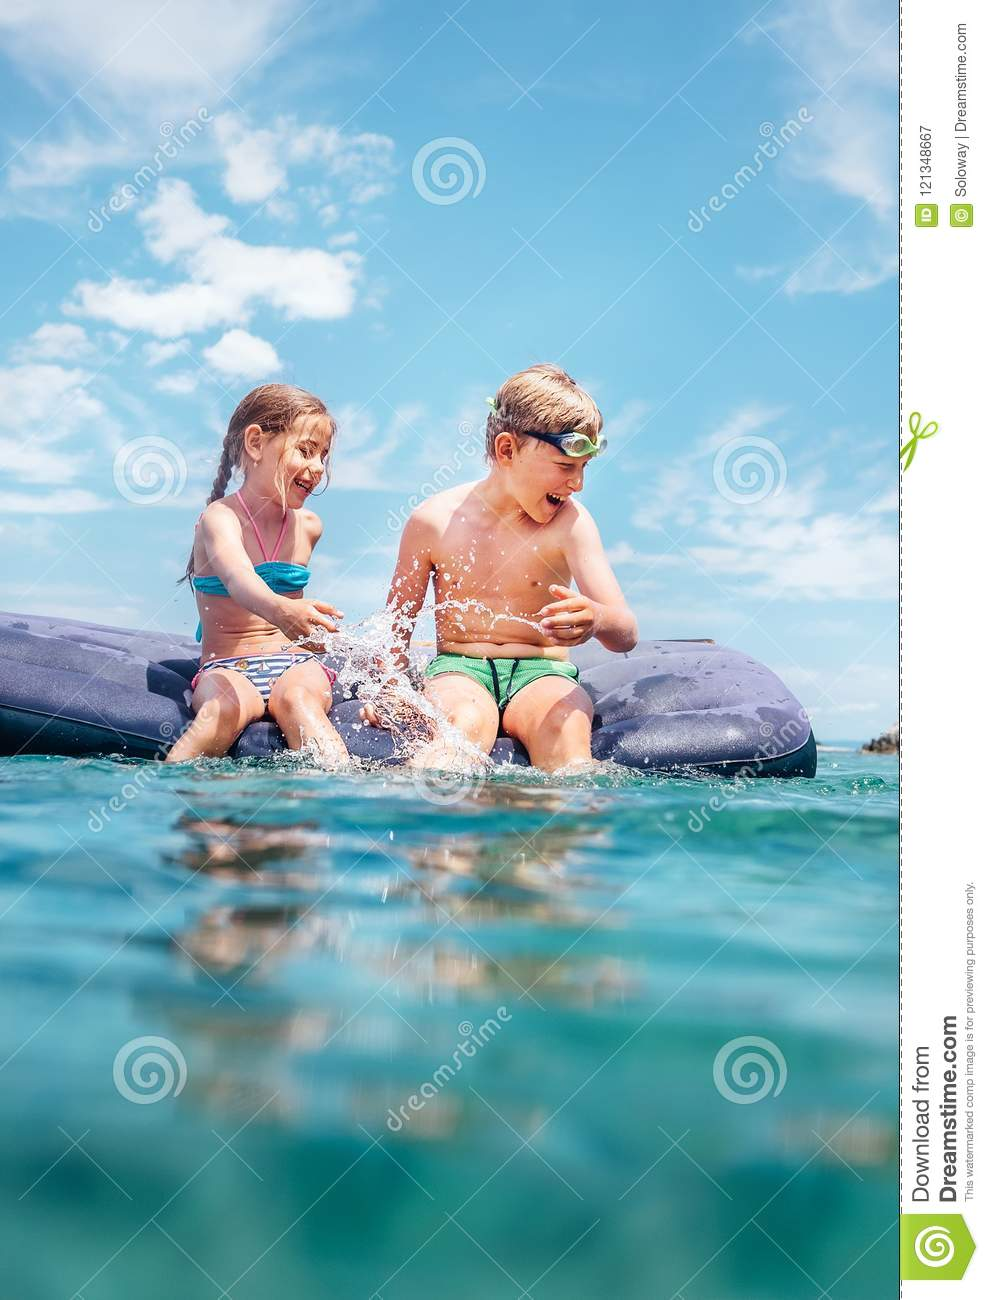 Two childs, sister and brother, have fun when swim on inflatable